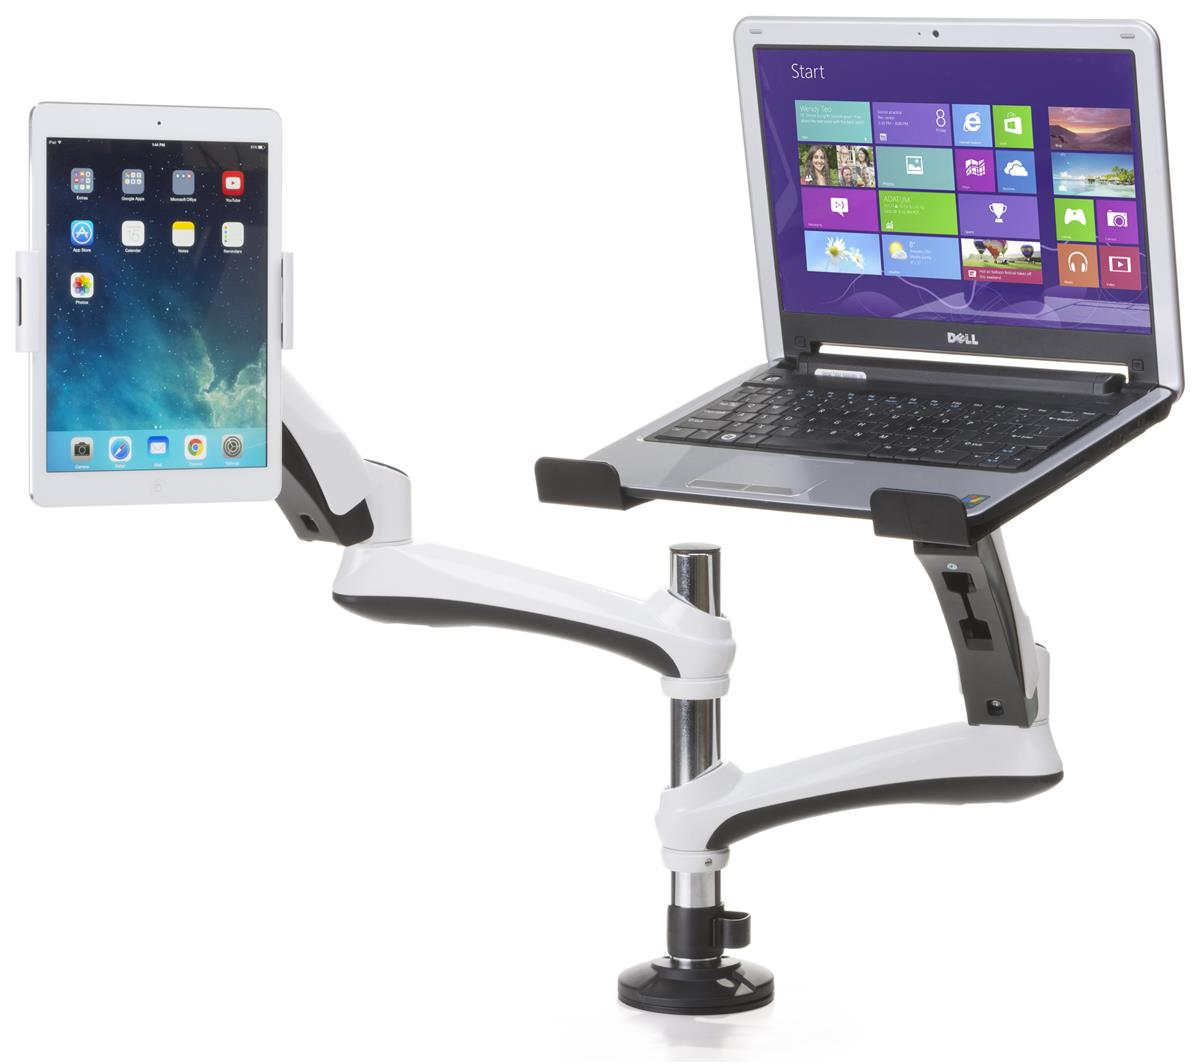 Articulated Computer Stand : Monitor arm with laptop stand multi use media bracket